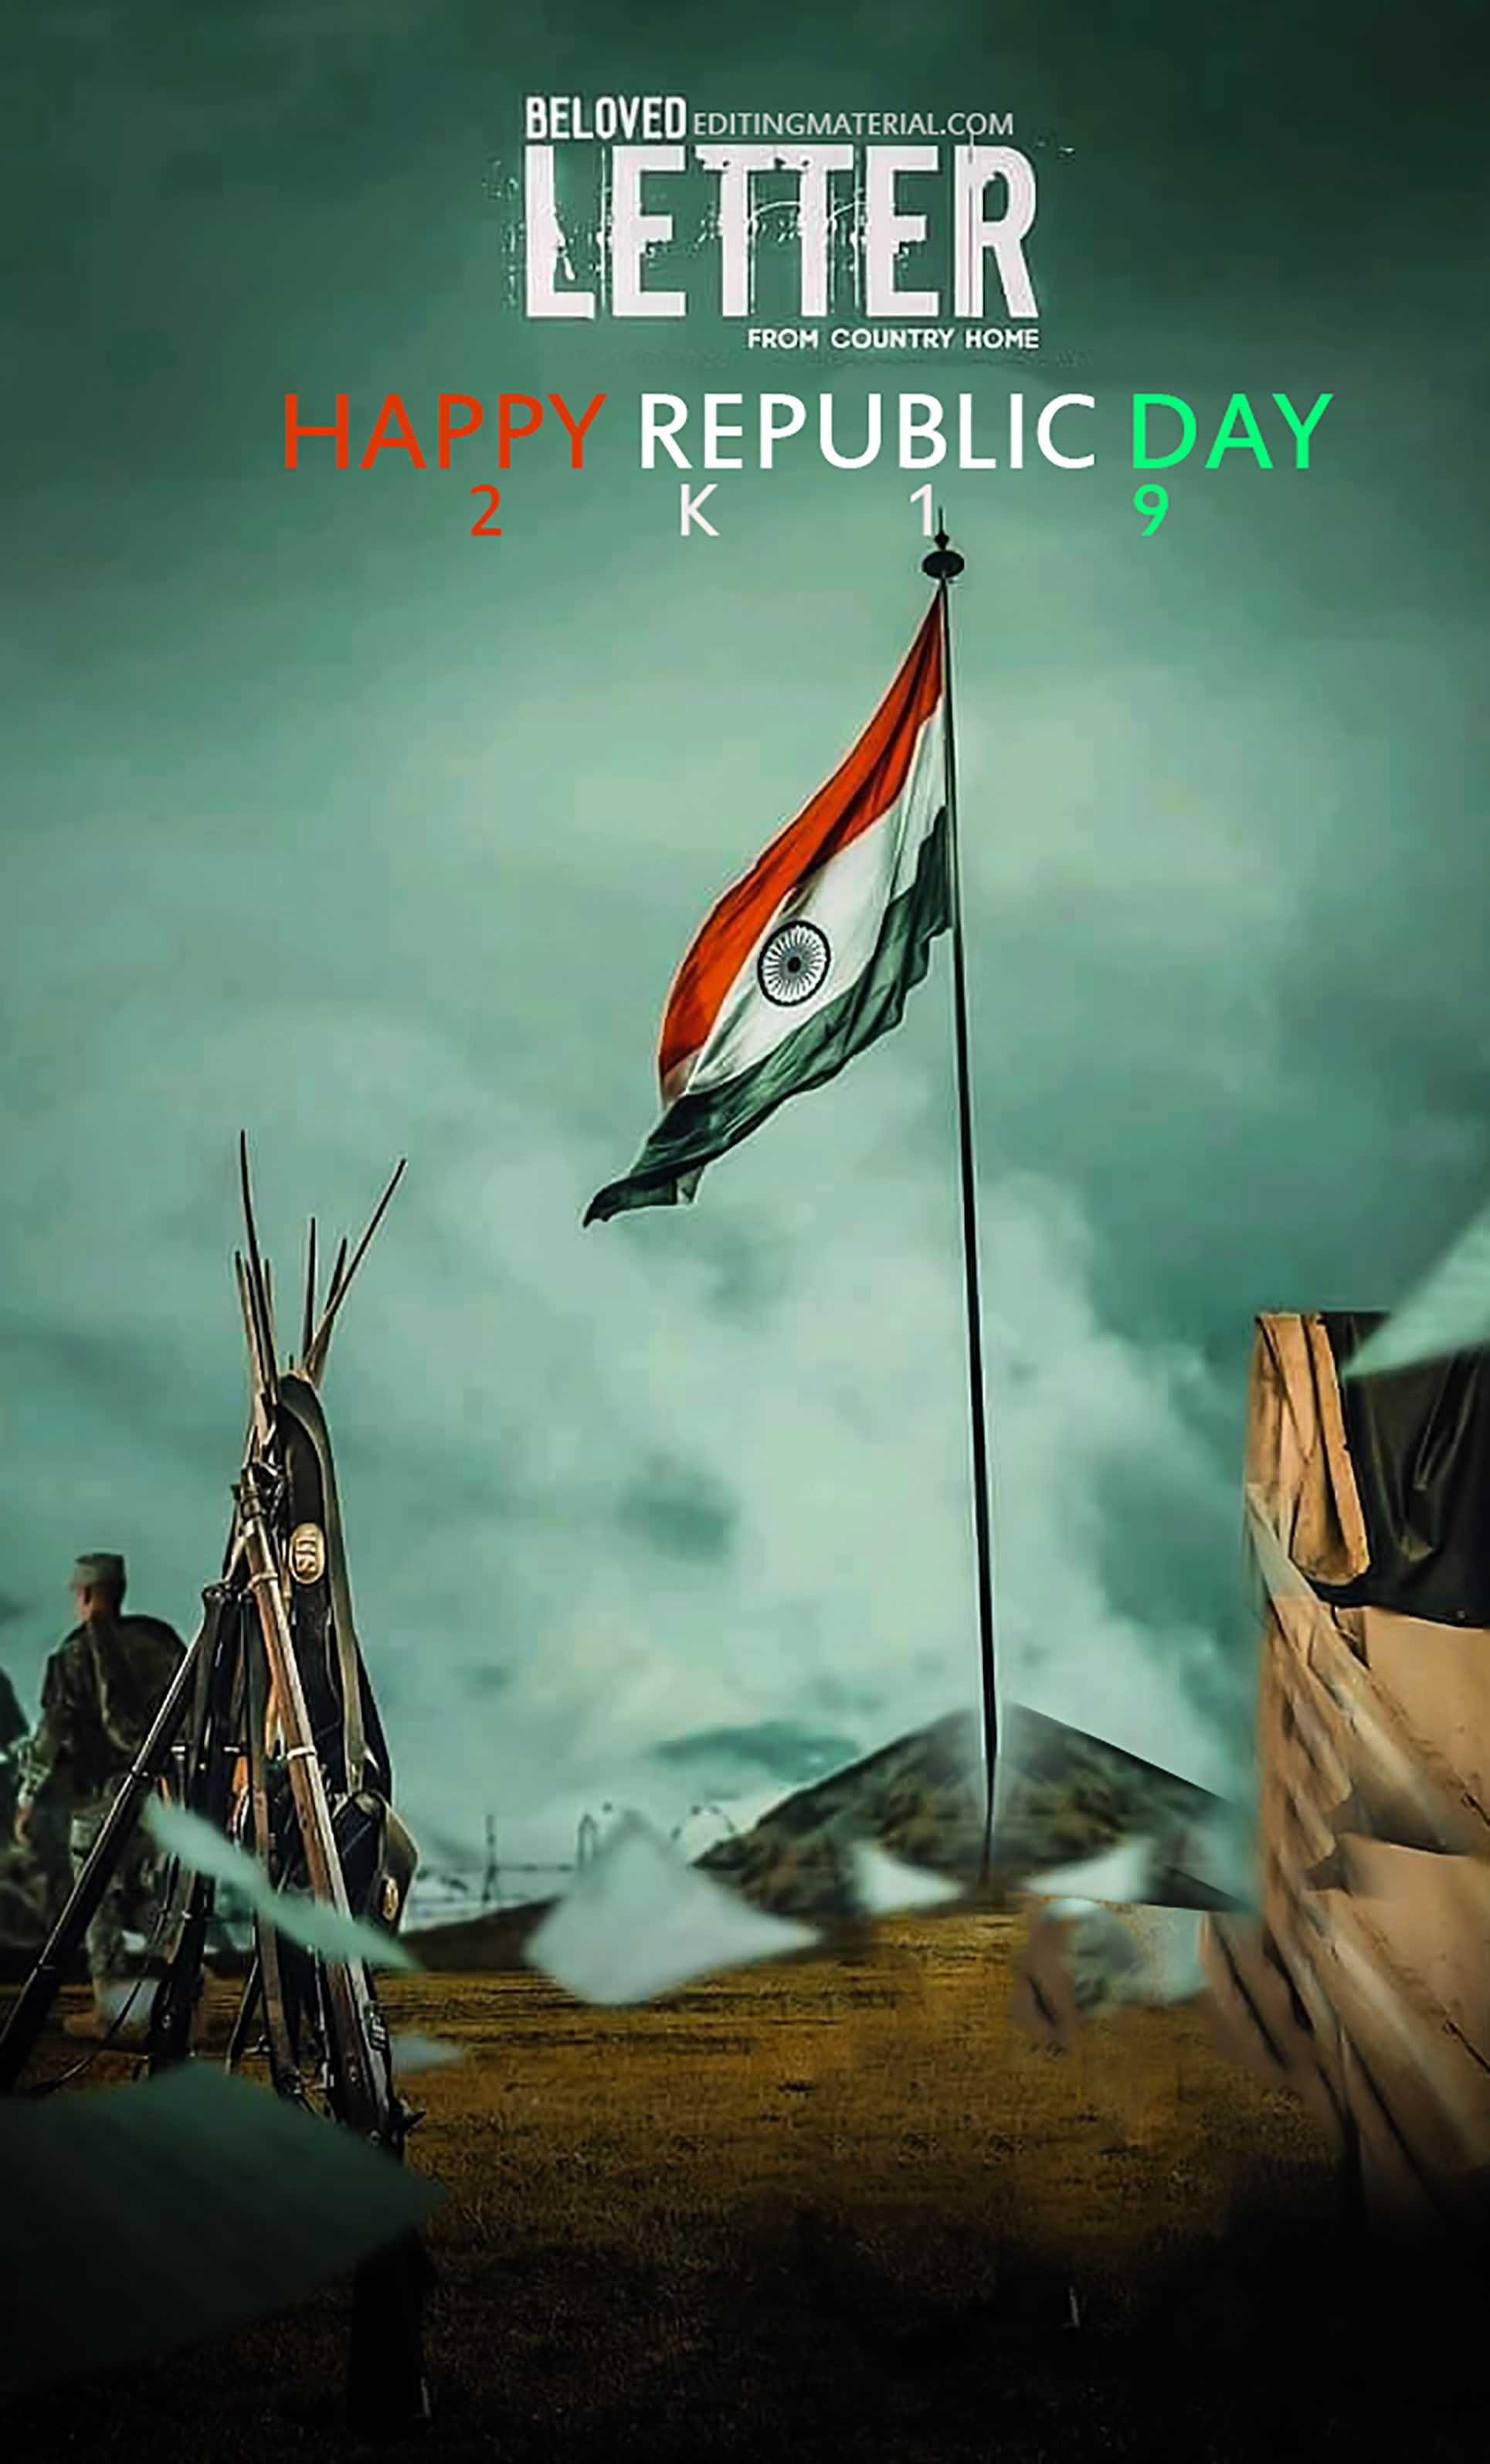 50 Independence Day Editing Background 15 August In 2020 Independence Day Images Download Independence Day Images Independence Day Images Hd